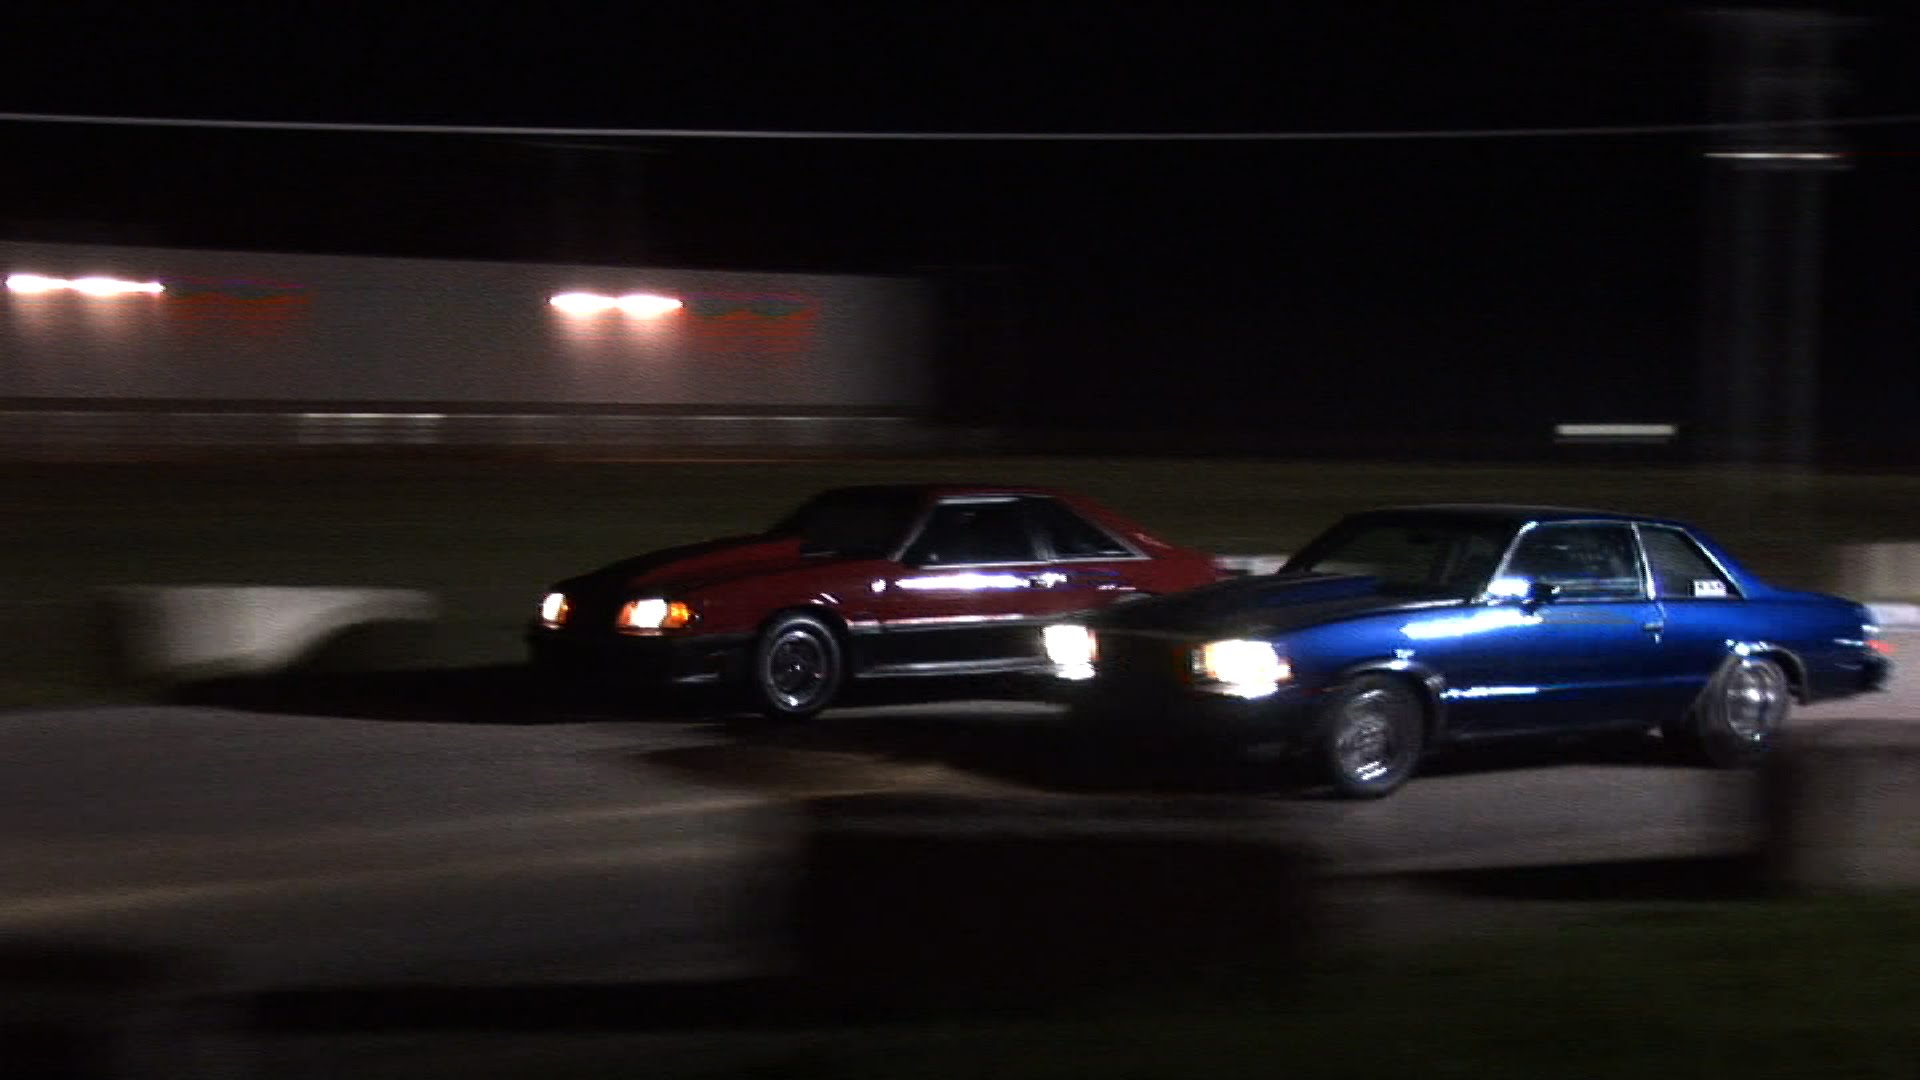 Street Race Is A Close Match As The Cars Come Up To The Finish Line ...